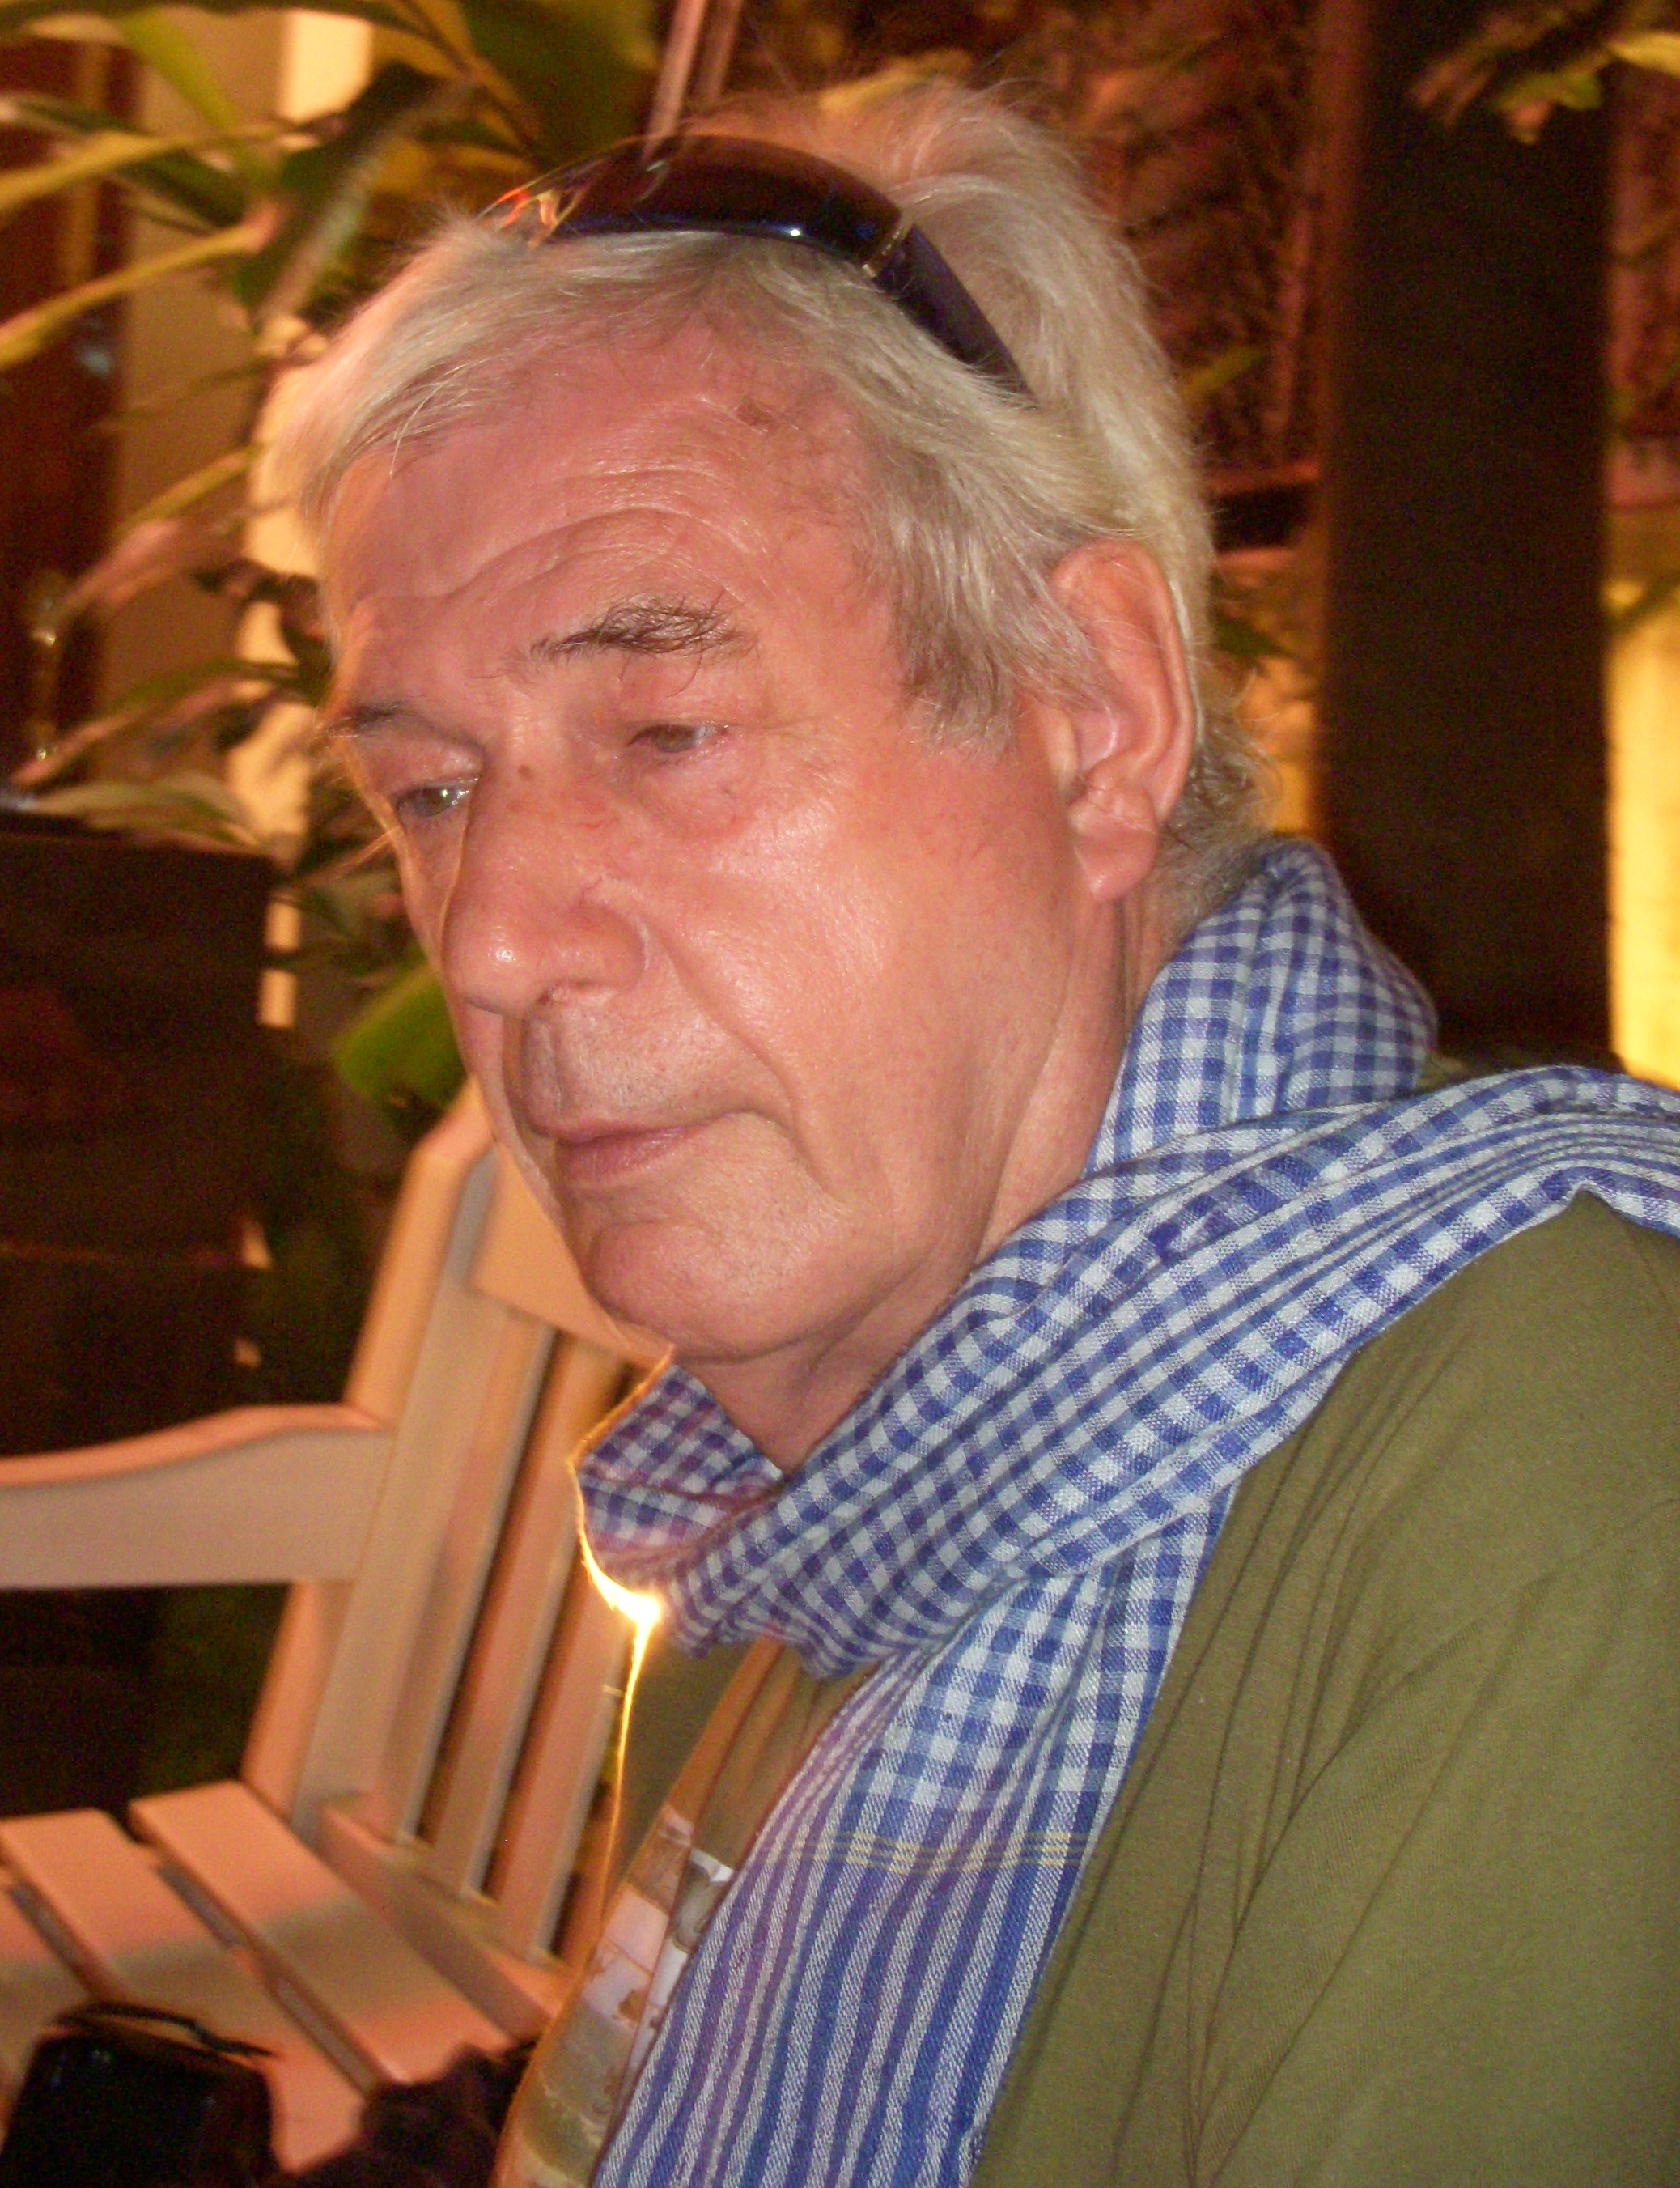 Image of Tim Page from Wikidata